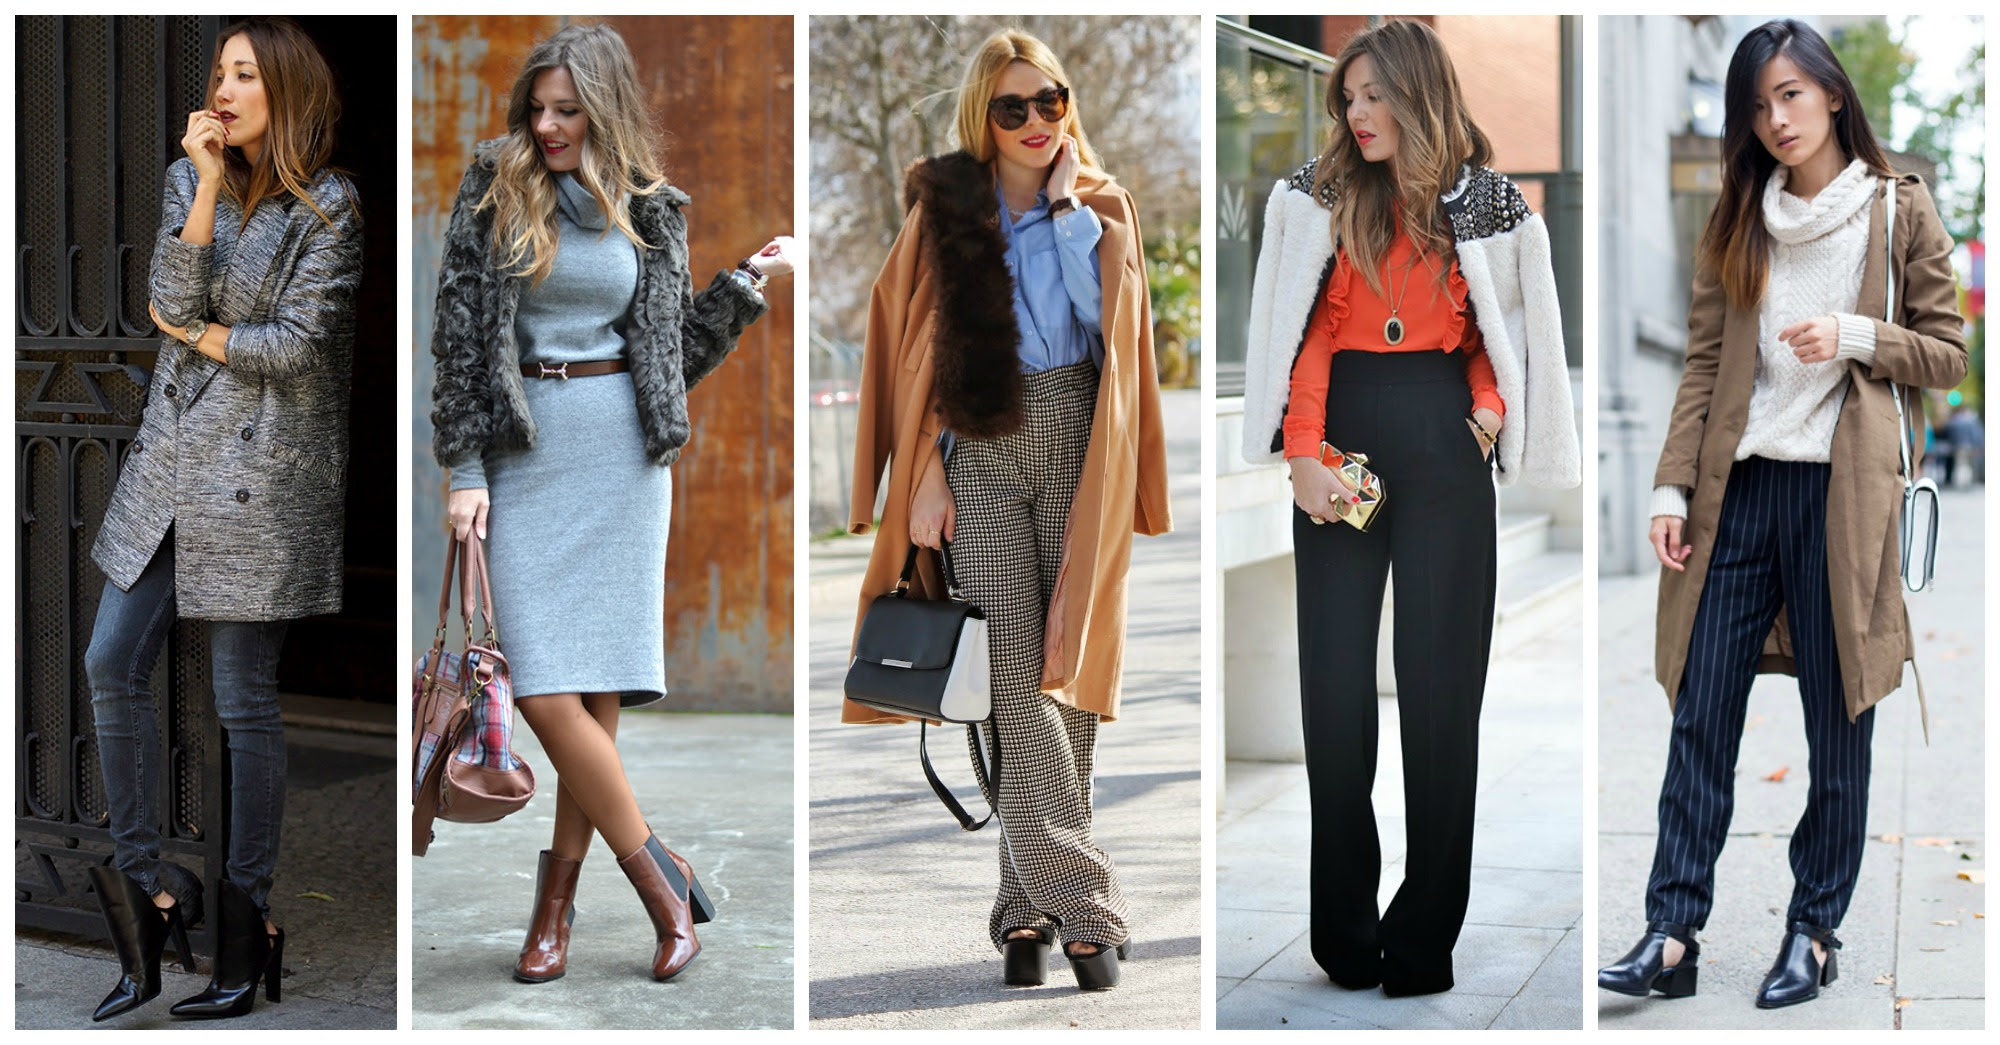 classy and elegant outfits to wear to work